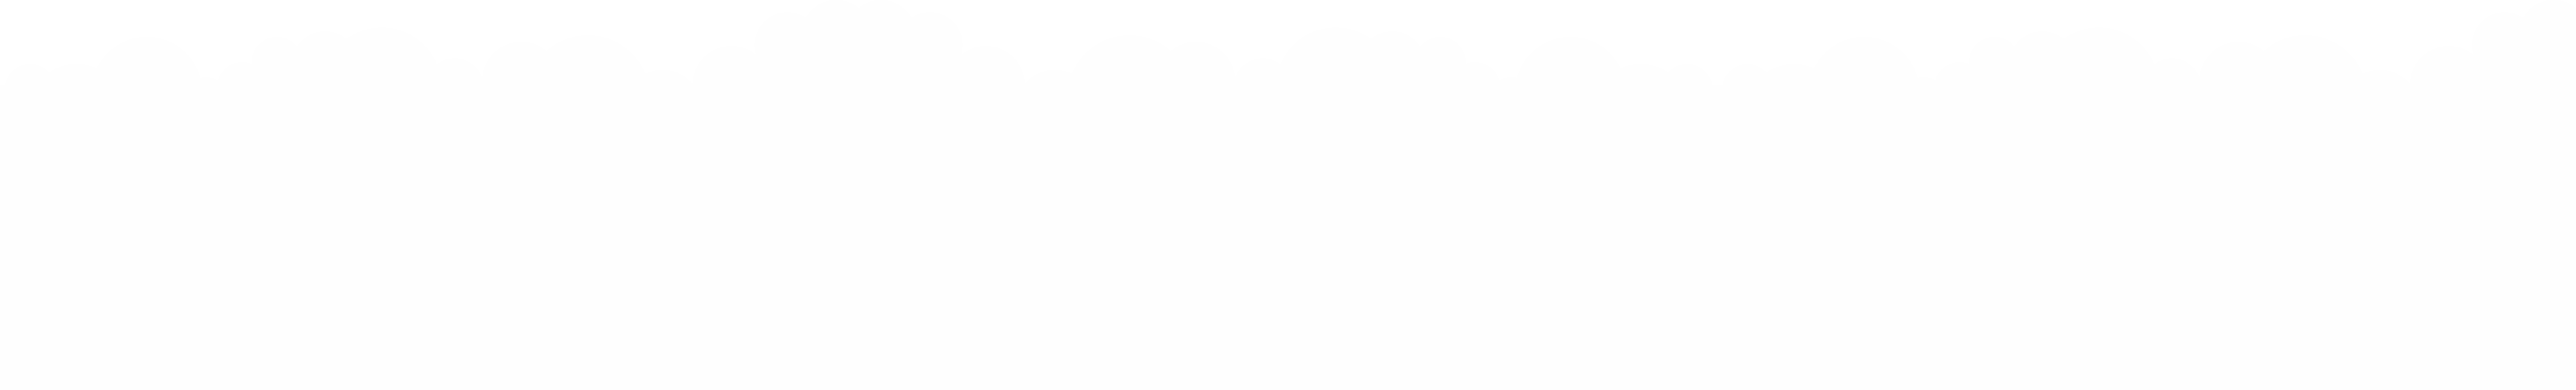 Cloud Background Layer 2